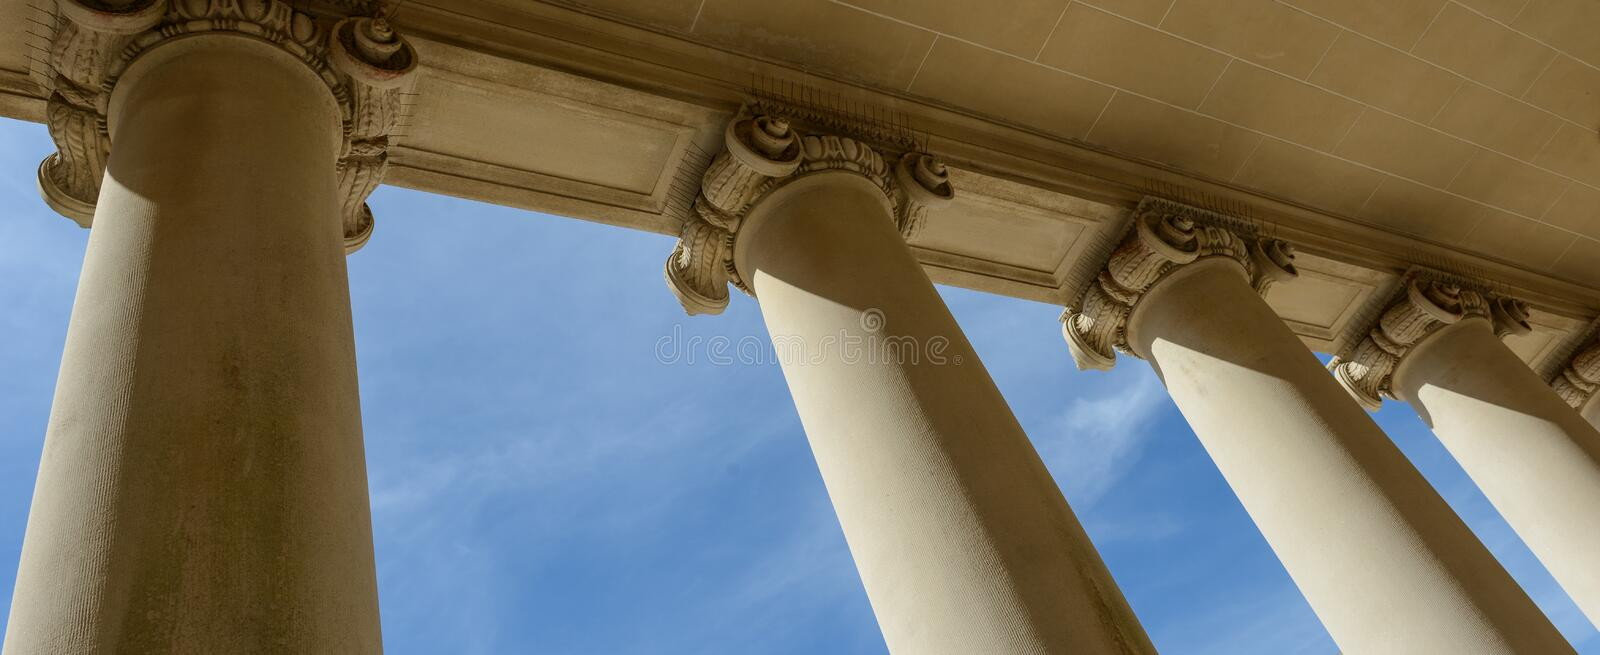 Pillars of Law and Justice stock photography